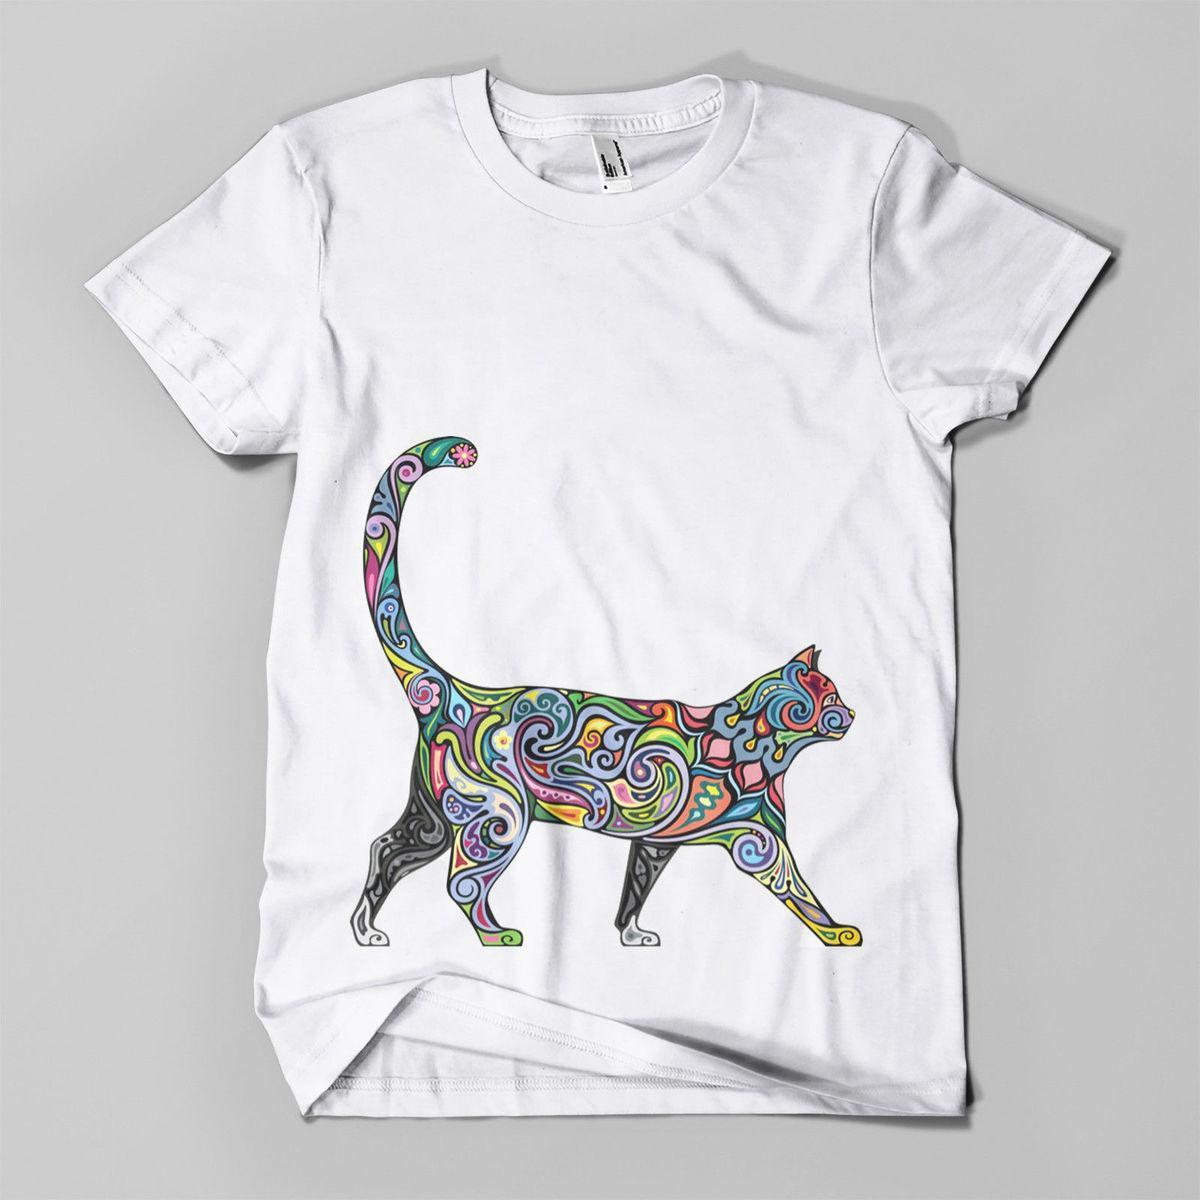 e17de0158 Floral Cat #1 Printed T Shirt Hipster Design Meow Feline Mens Girls Tee Top  New Funny Clothing Casual Short Sleeve Tshirts Quirky T Shirt Awesome T  Shirts ...